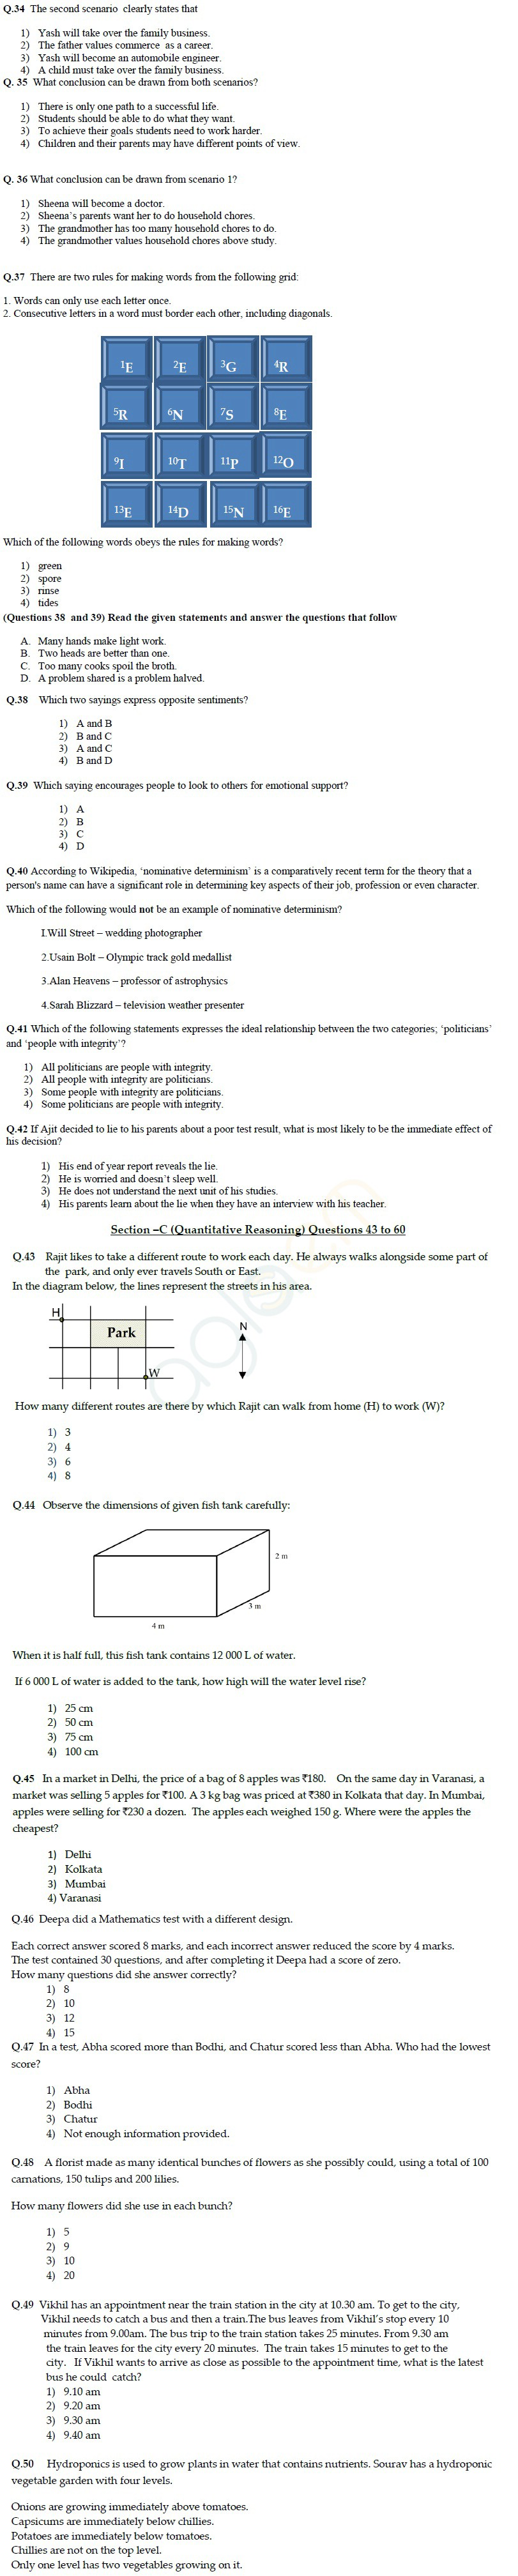 Help with papers solutions pdf 2014